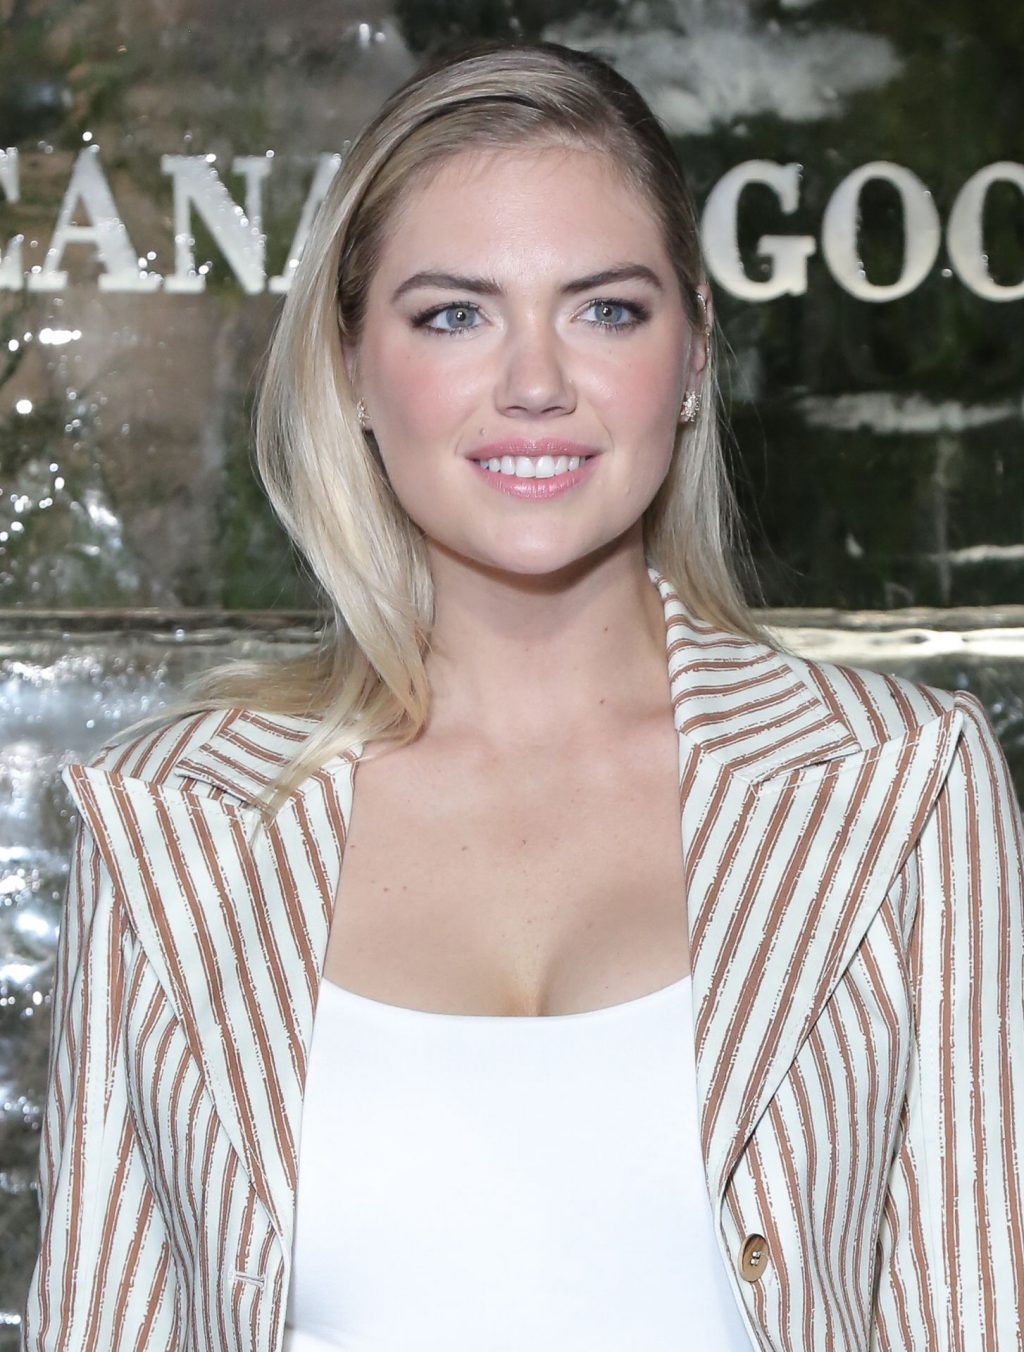 Kate Upton Sexy The Fappening Blog 52 1024x1352 - Kate Upton Attends Canada Goose And Vogue Cocktails & Conversations (104 Photos)